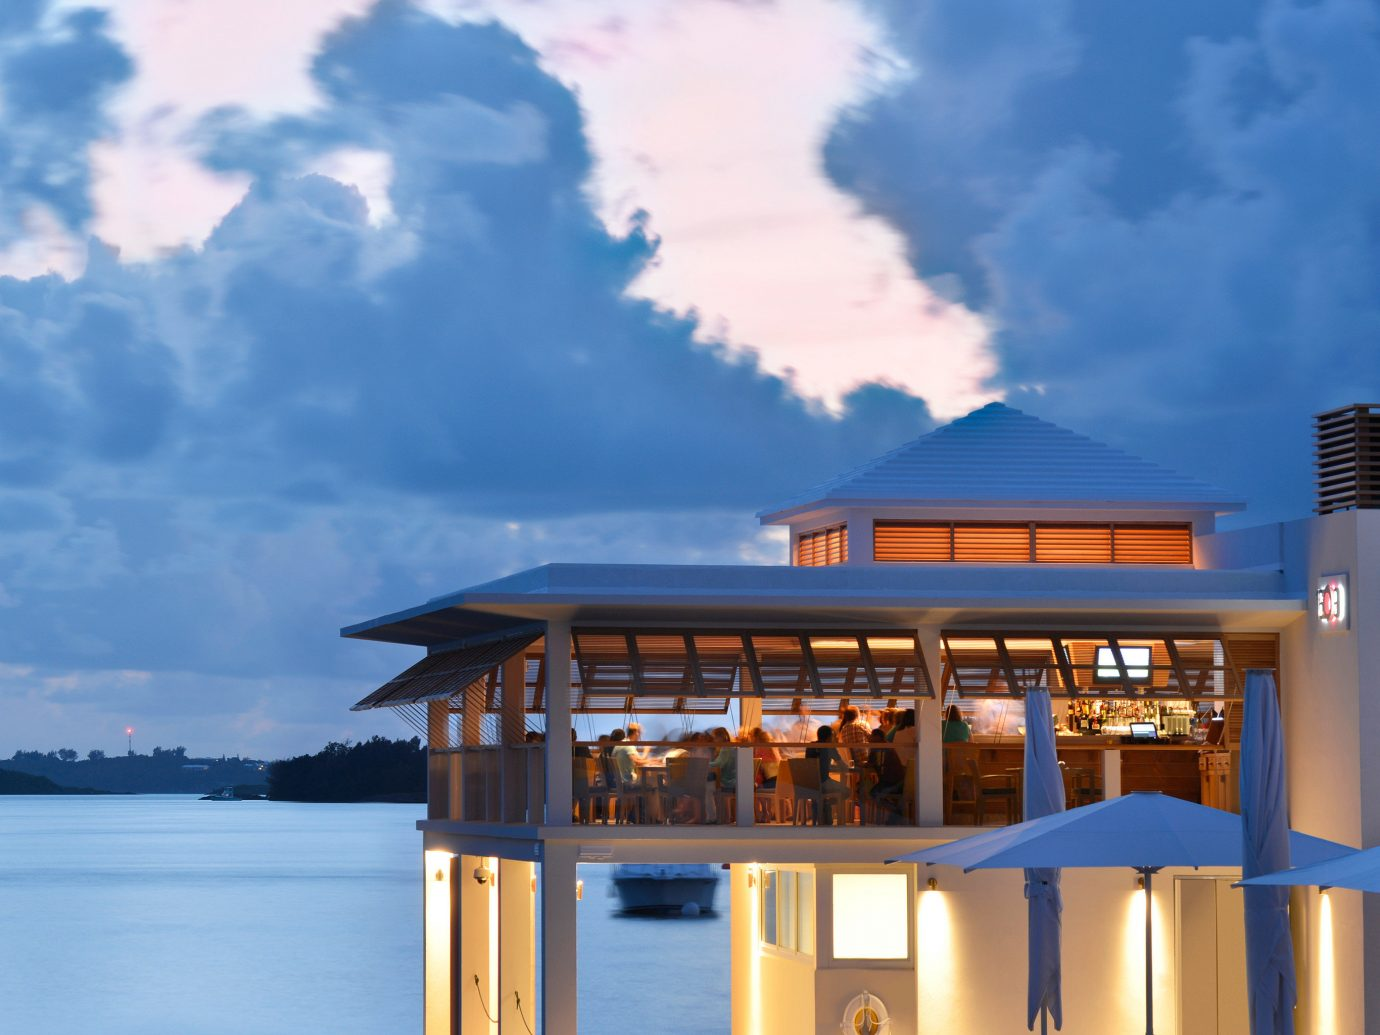 Architecture Beachfront Buildings Exterior Hotels sky outdoor blue house vacation cloud Ocean Sea reflection tower clouds day